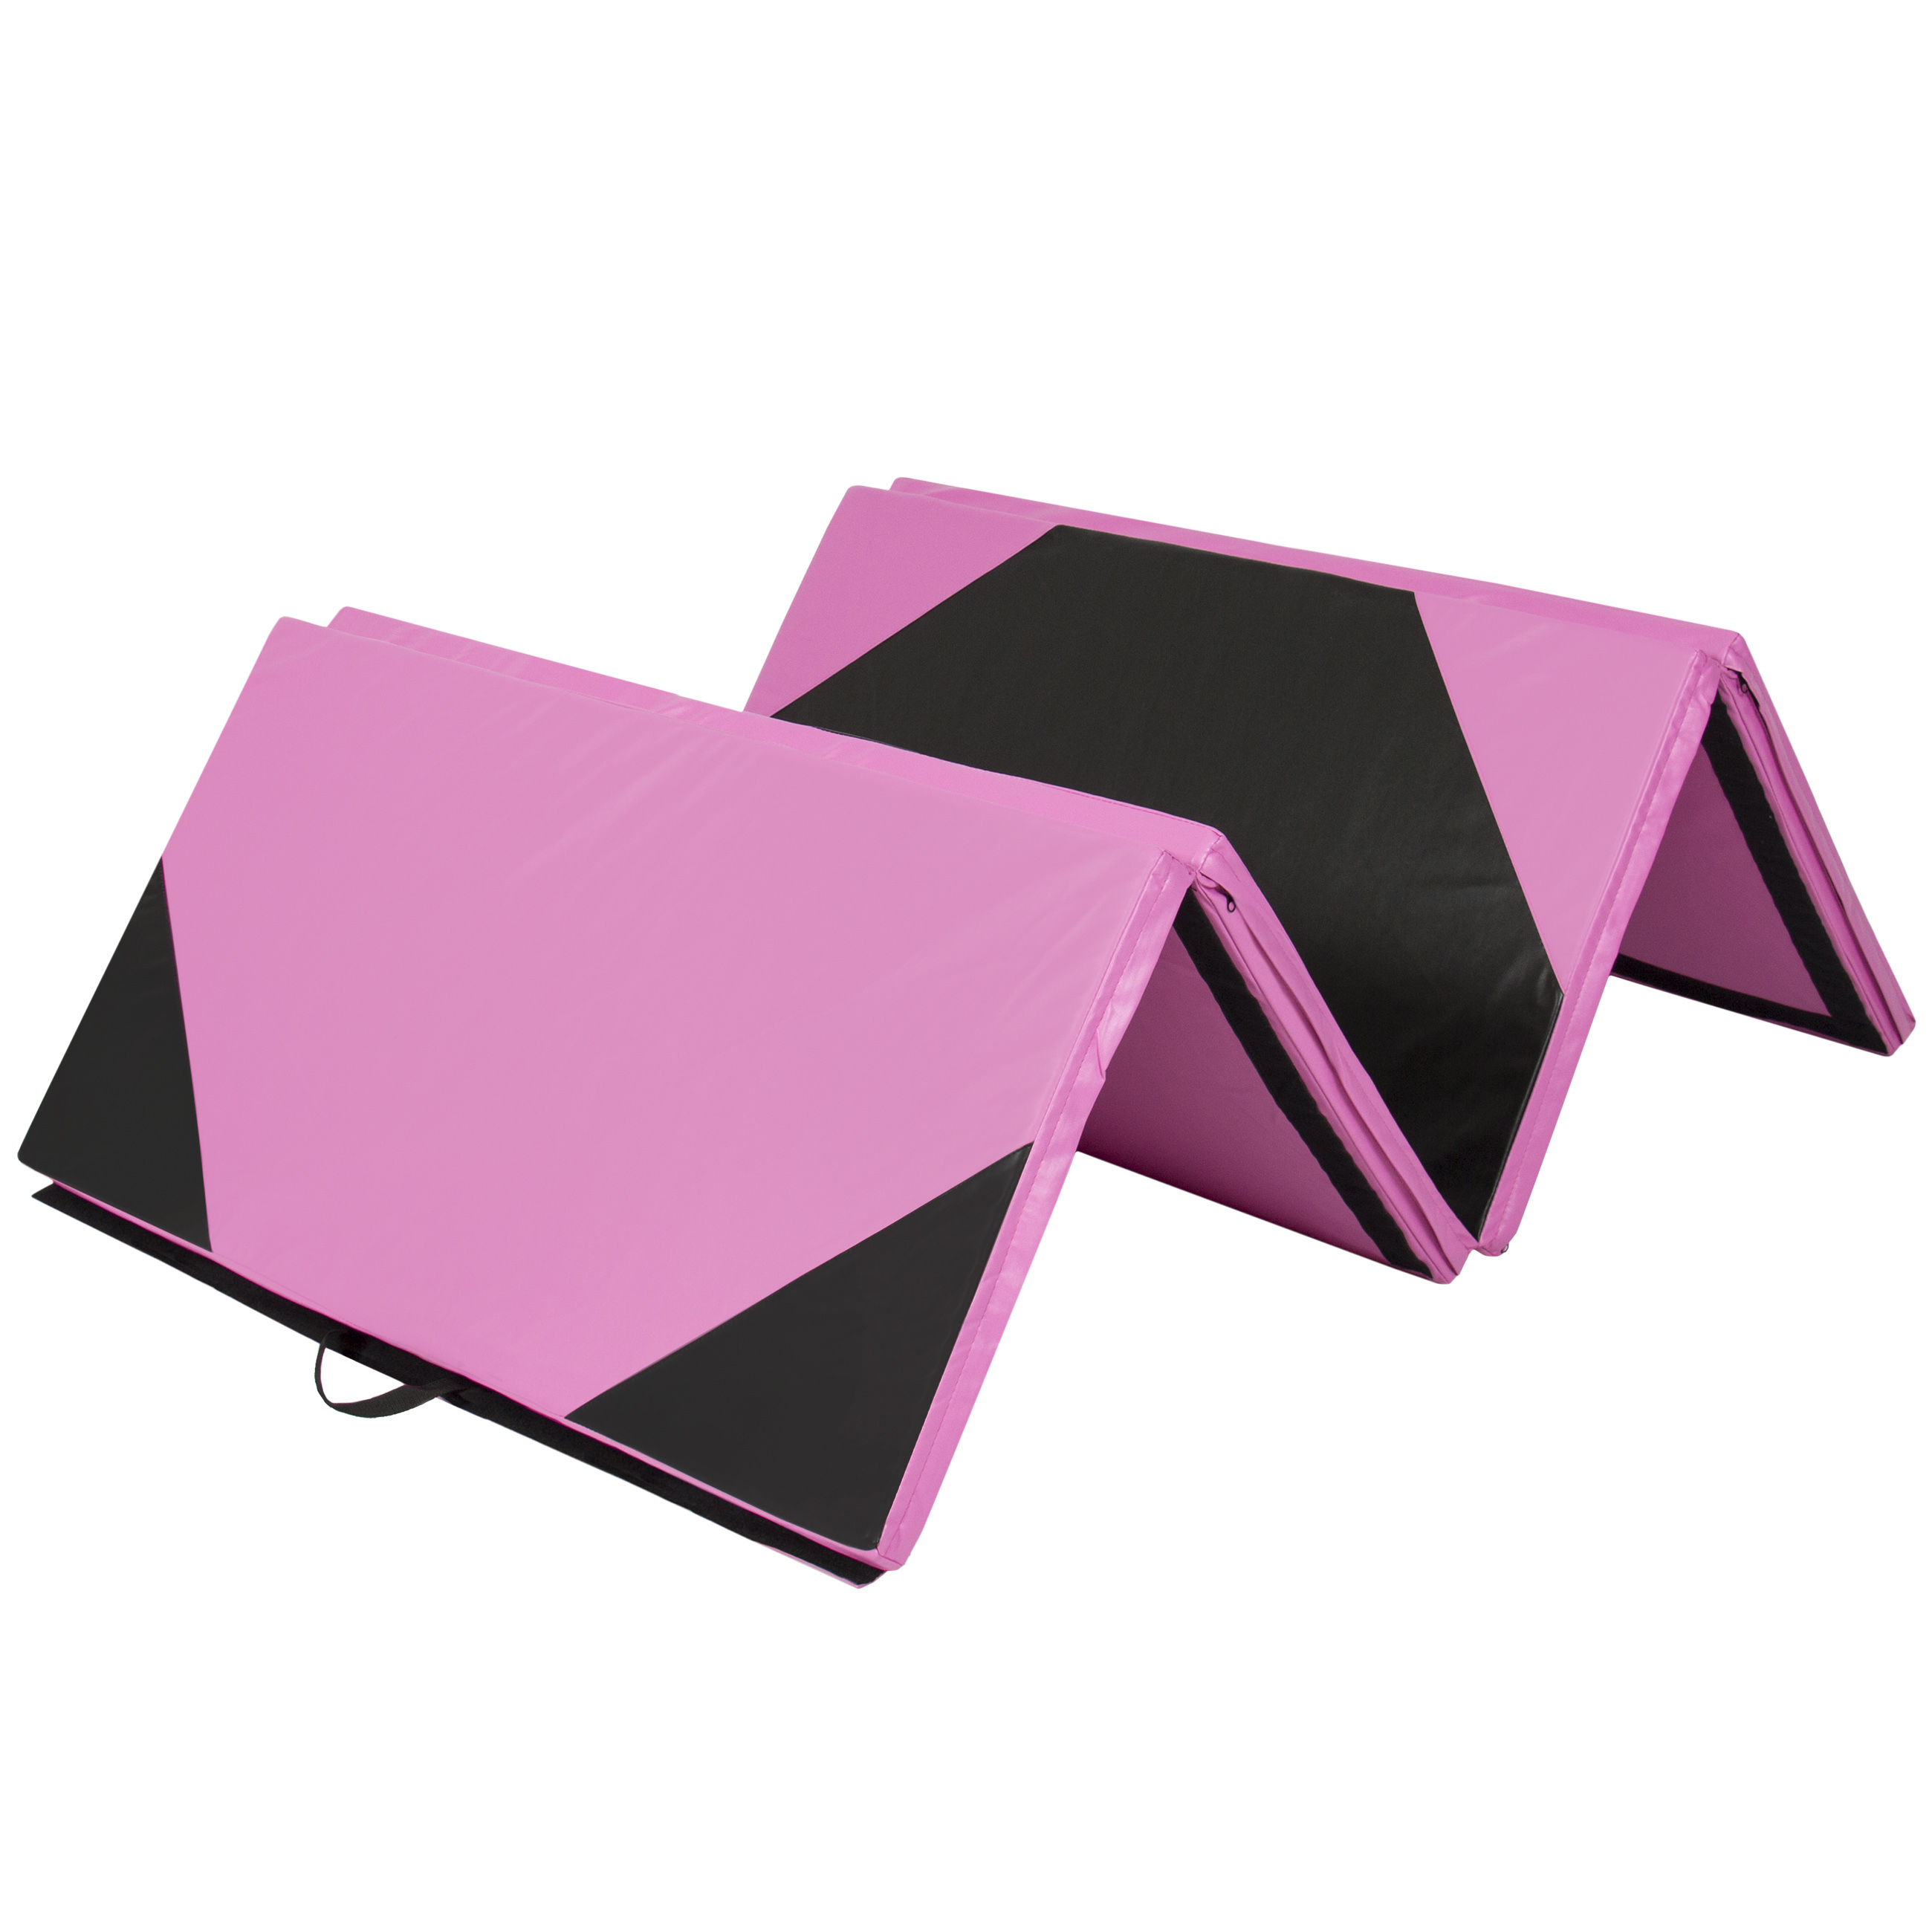 products mat panel thick gymnastics inc mountain cheap detail sportmad folding cloud mats